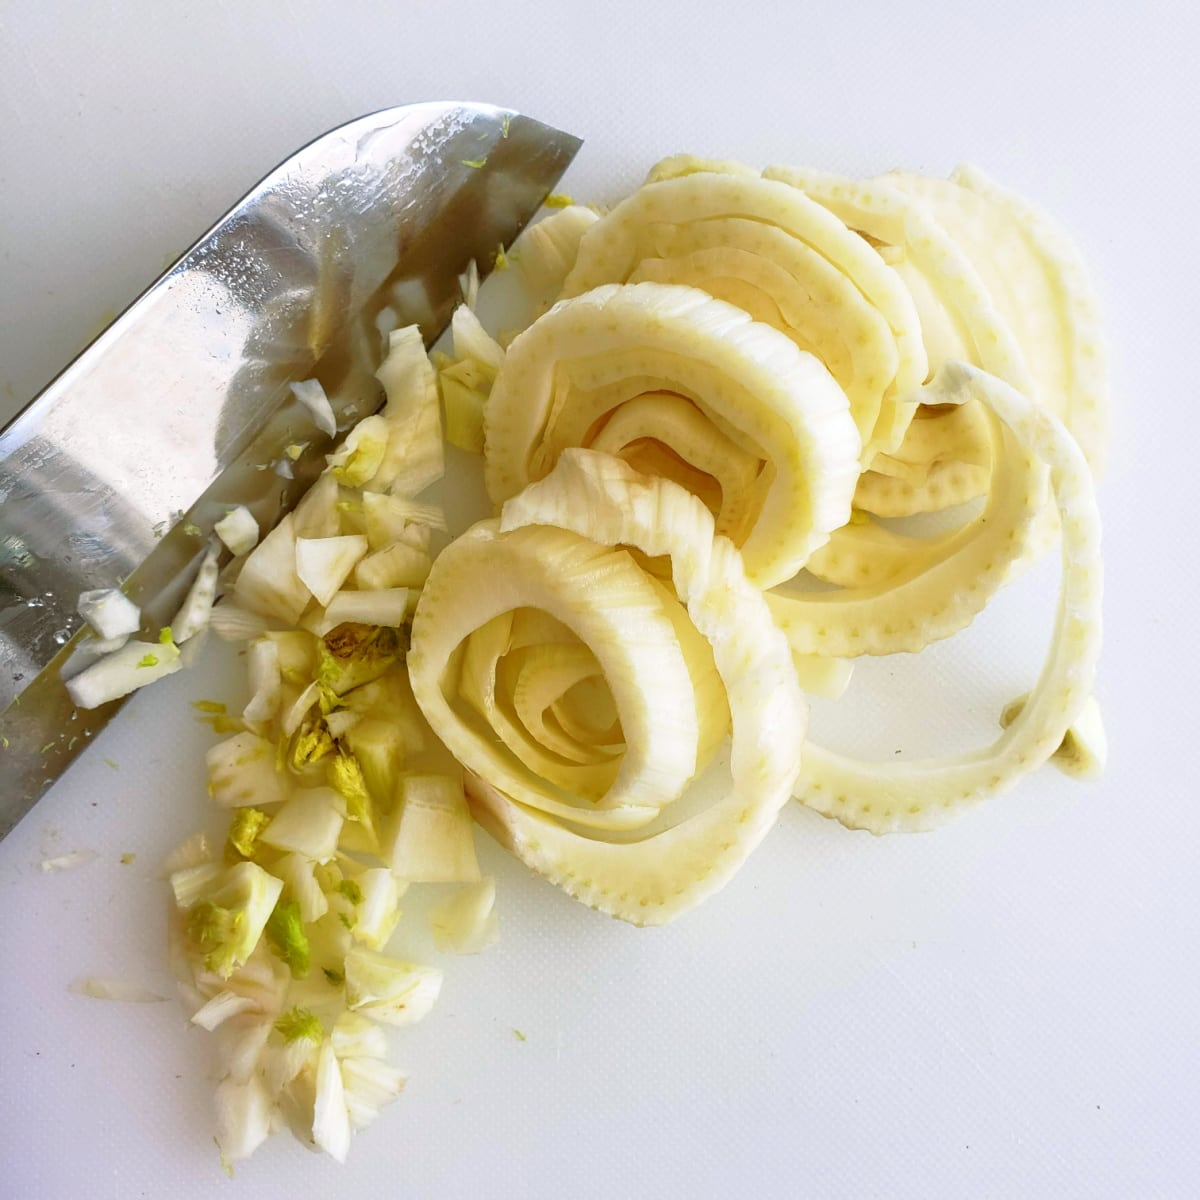 Cut fennel into rounds with a knife on a white cutting board